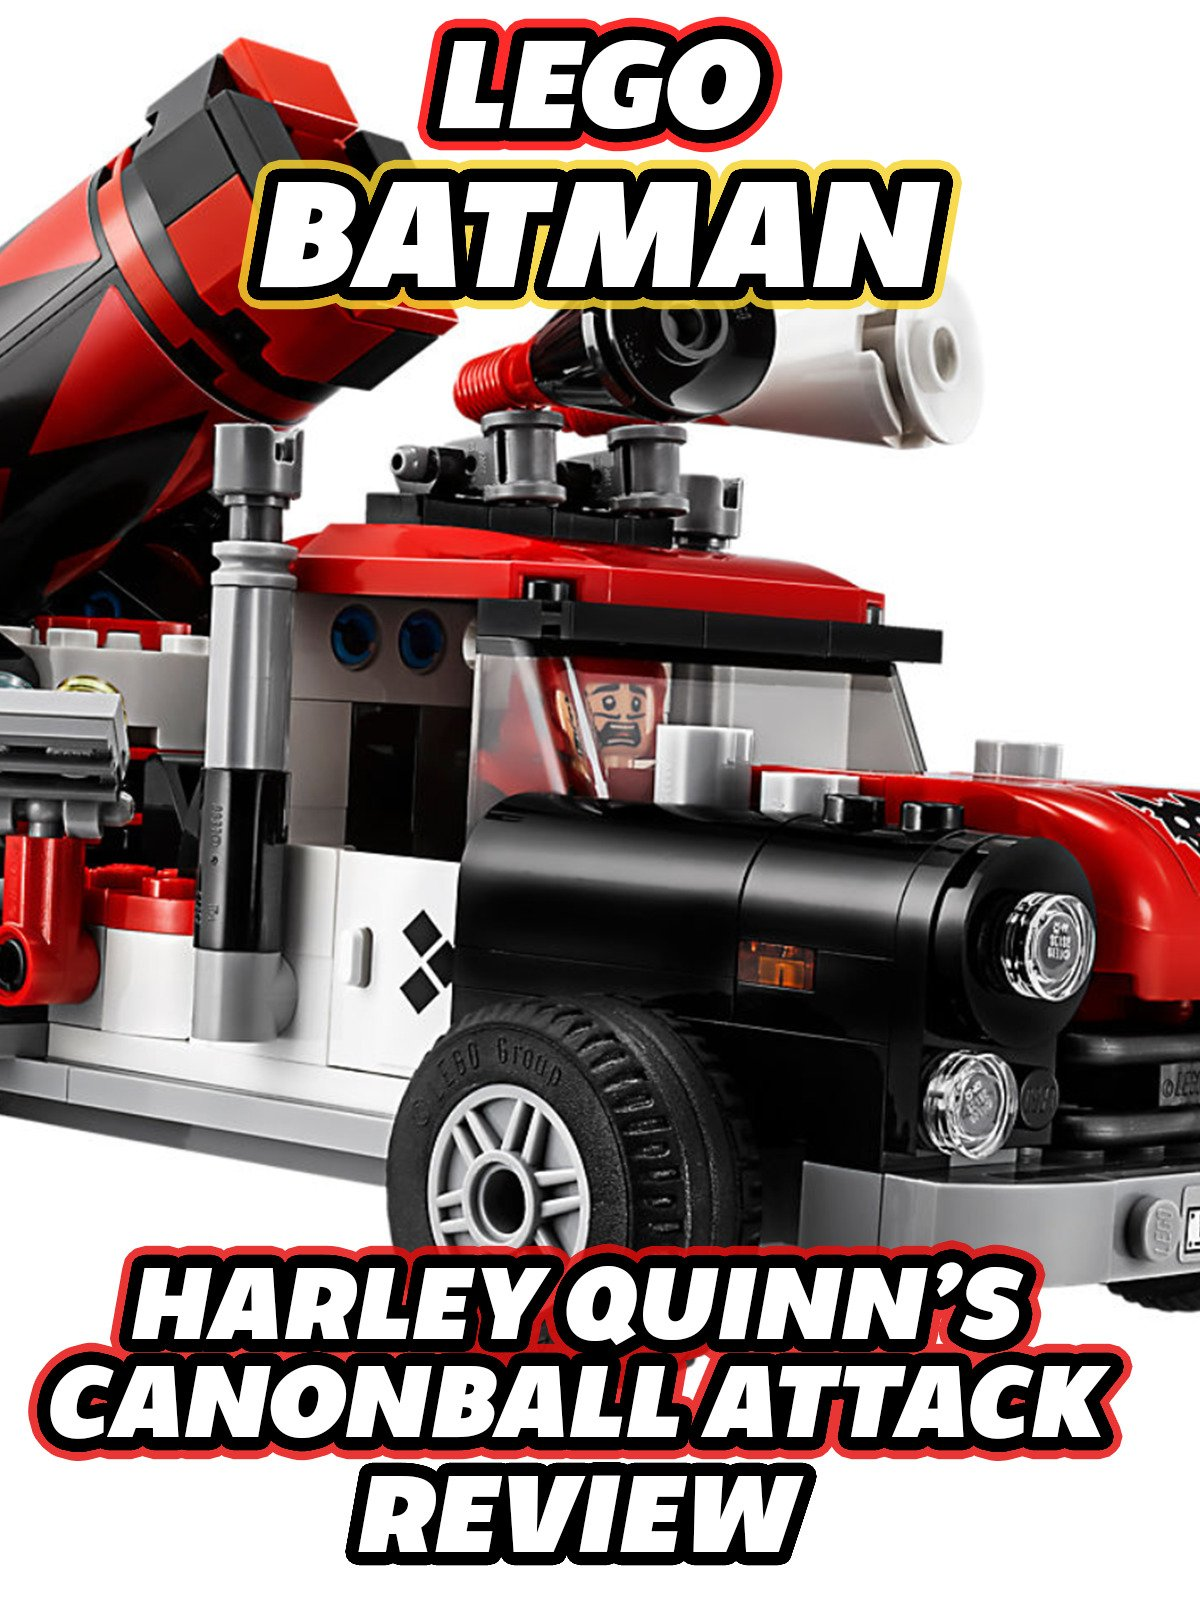 Clip: Lego Batman Harley Quinn Canonball Attack Review